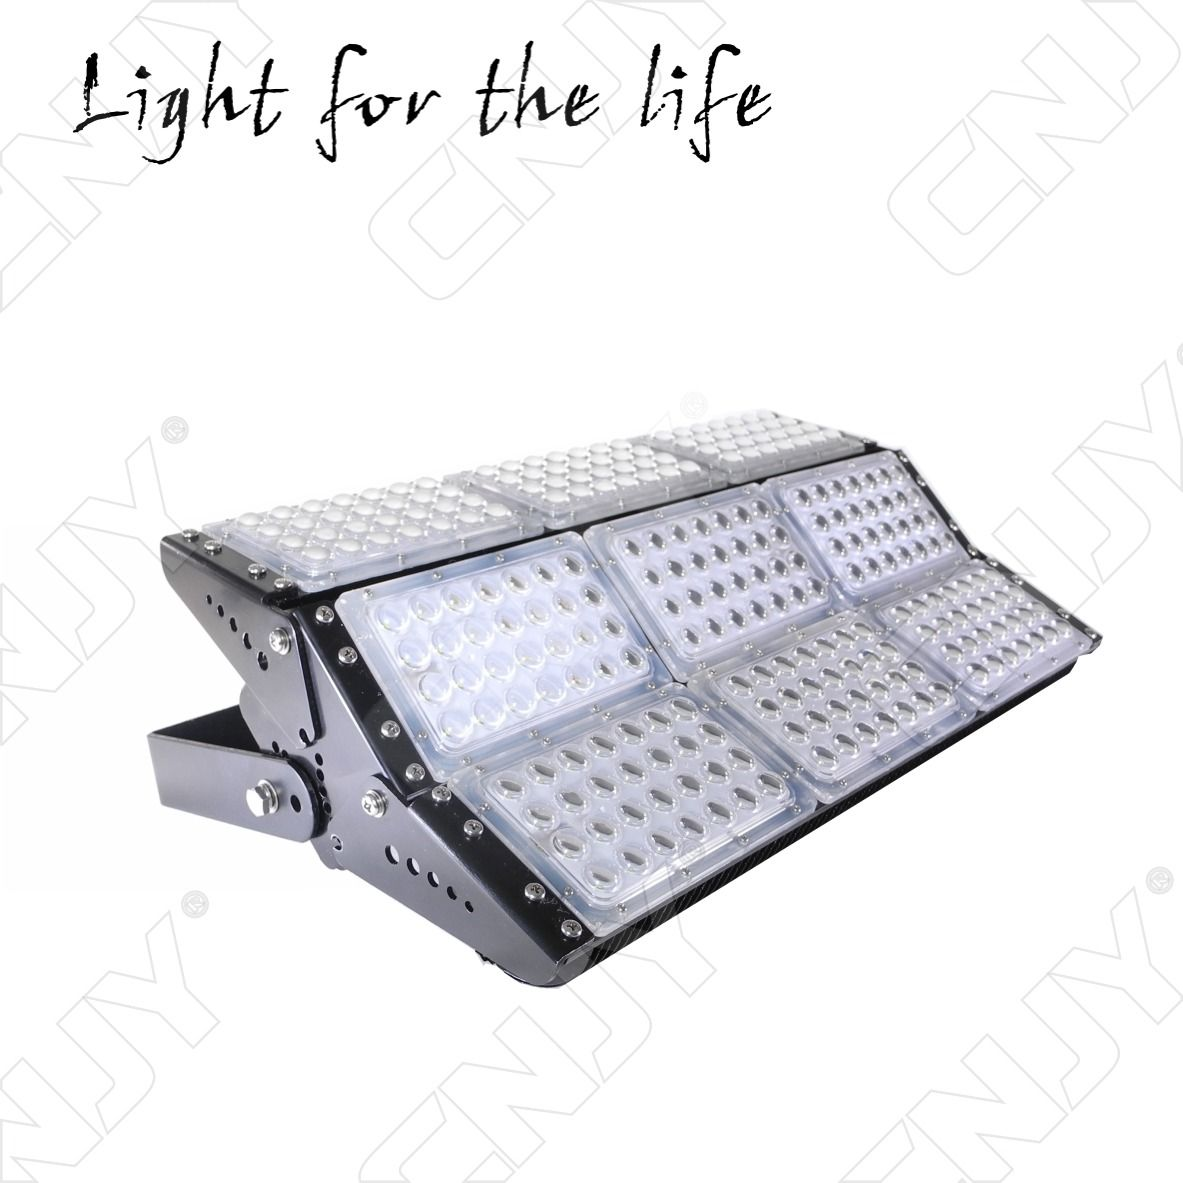 Projecteur Led Exterieur Ip66 Spot Industriel Eclairage Orientable Ip66 Exterieur Cree Led 400w 5400k 100 270v Ac 36000lm